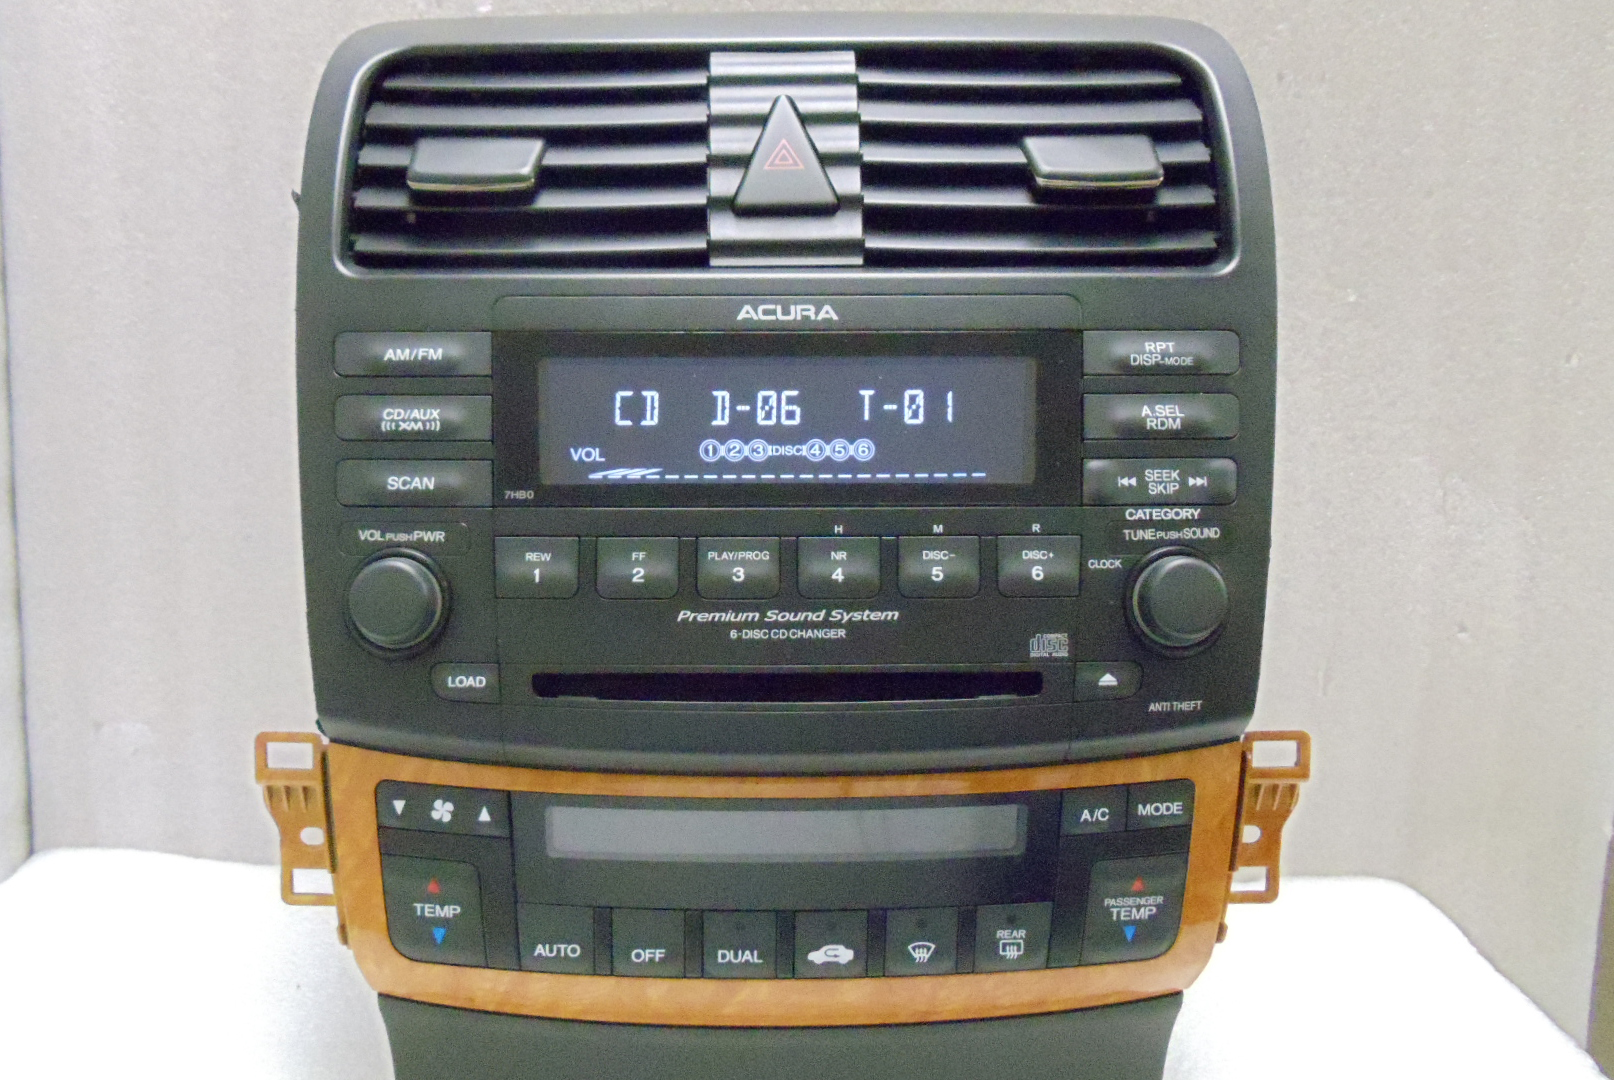 acura tsx xm radio stereo 6 cd changer climate temp